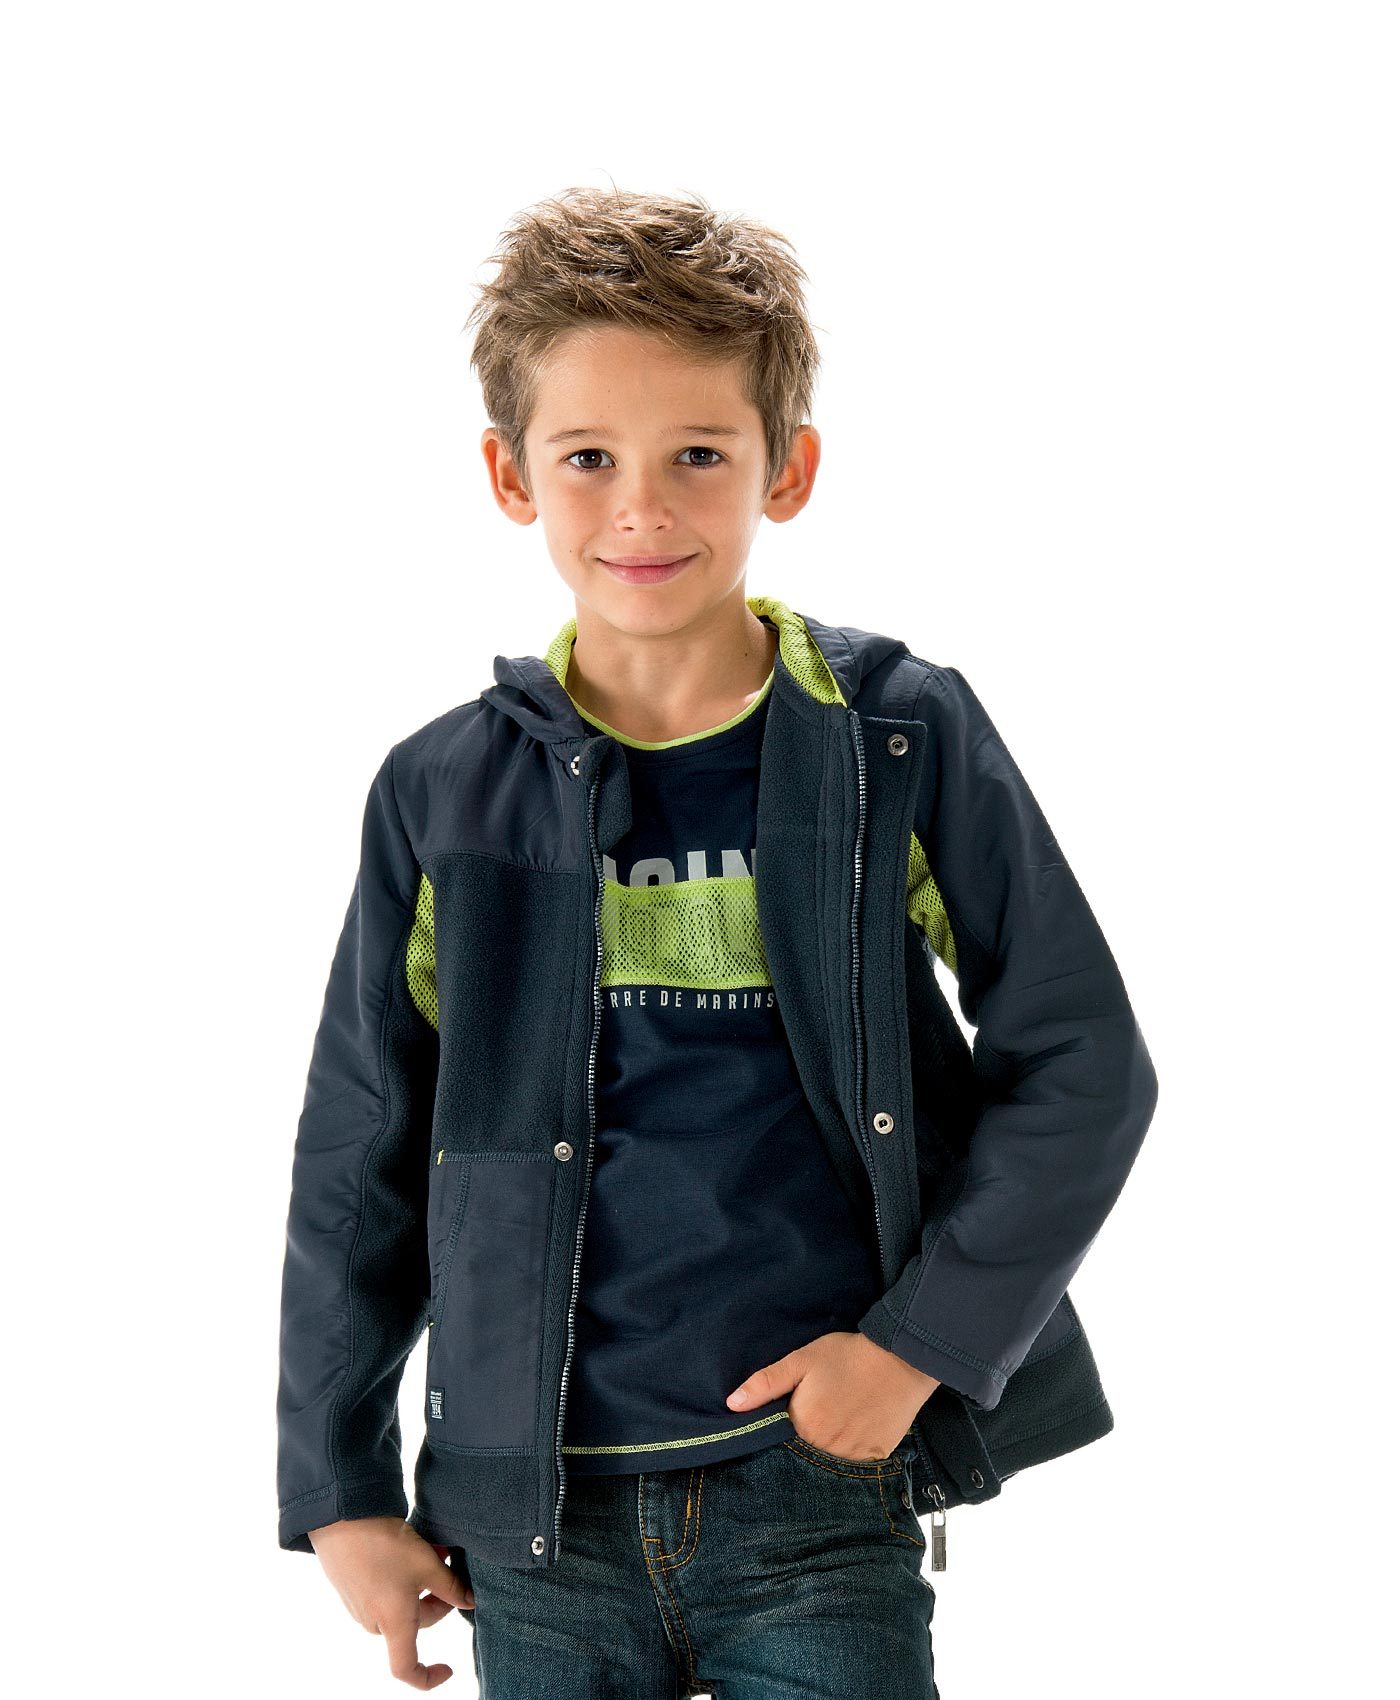 veste gar on marine veste blouson manteau mode enfant. Black Bedroom Furniture Sets. Home Design Ideas